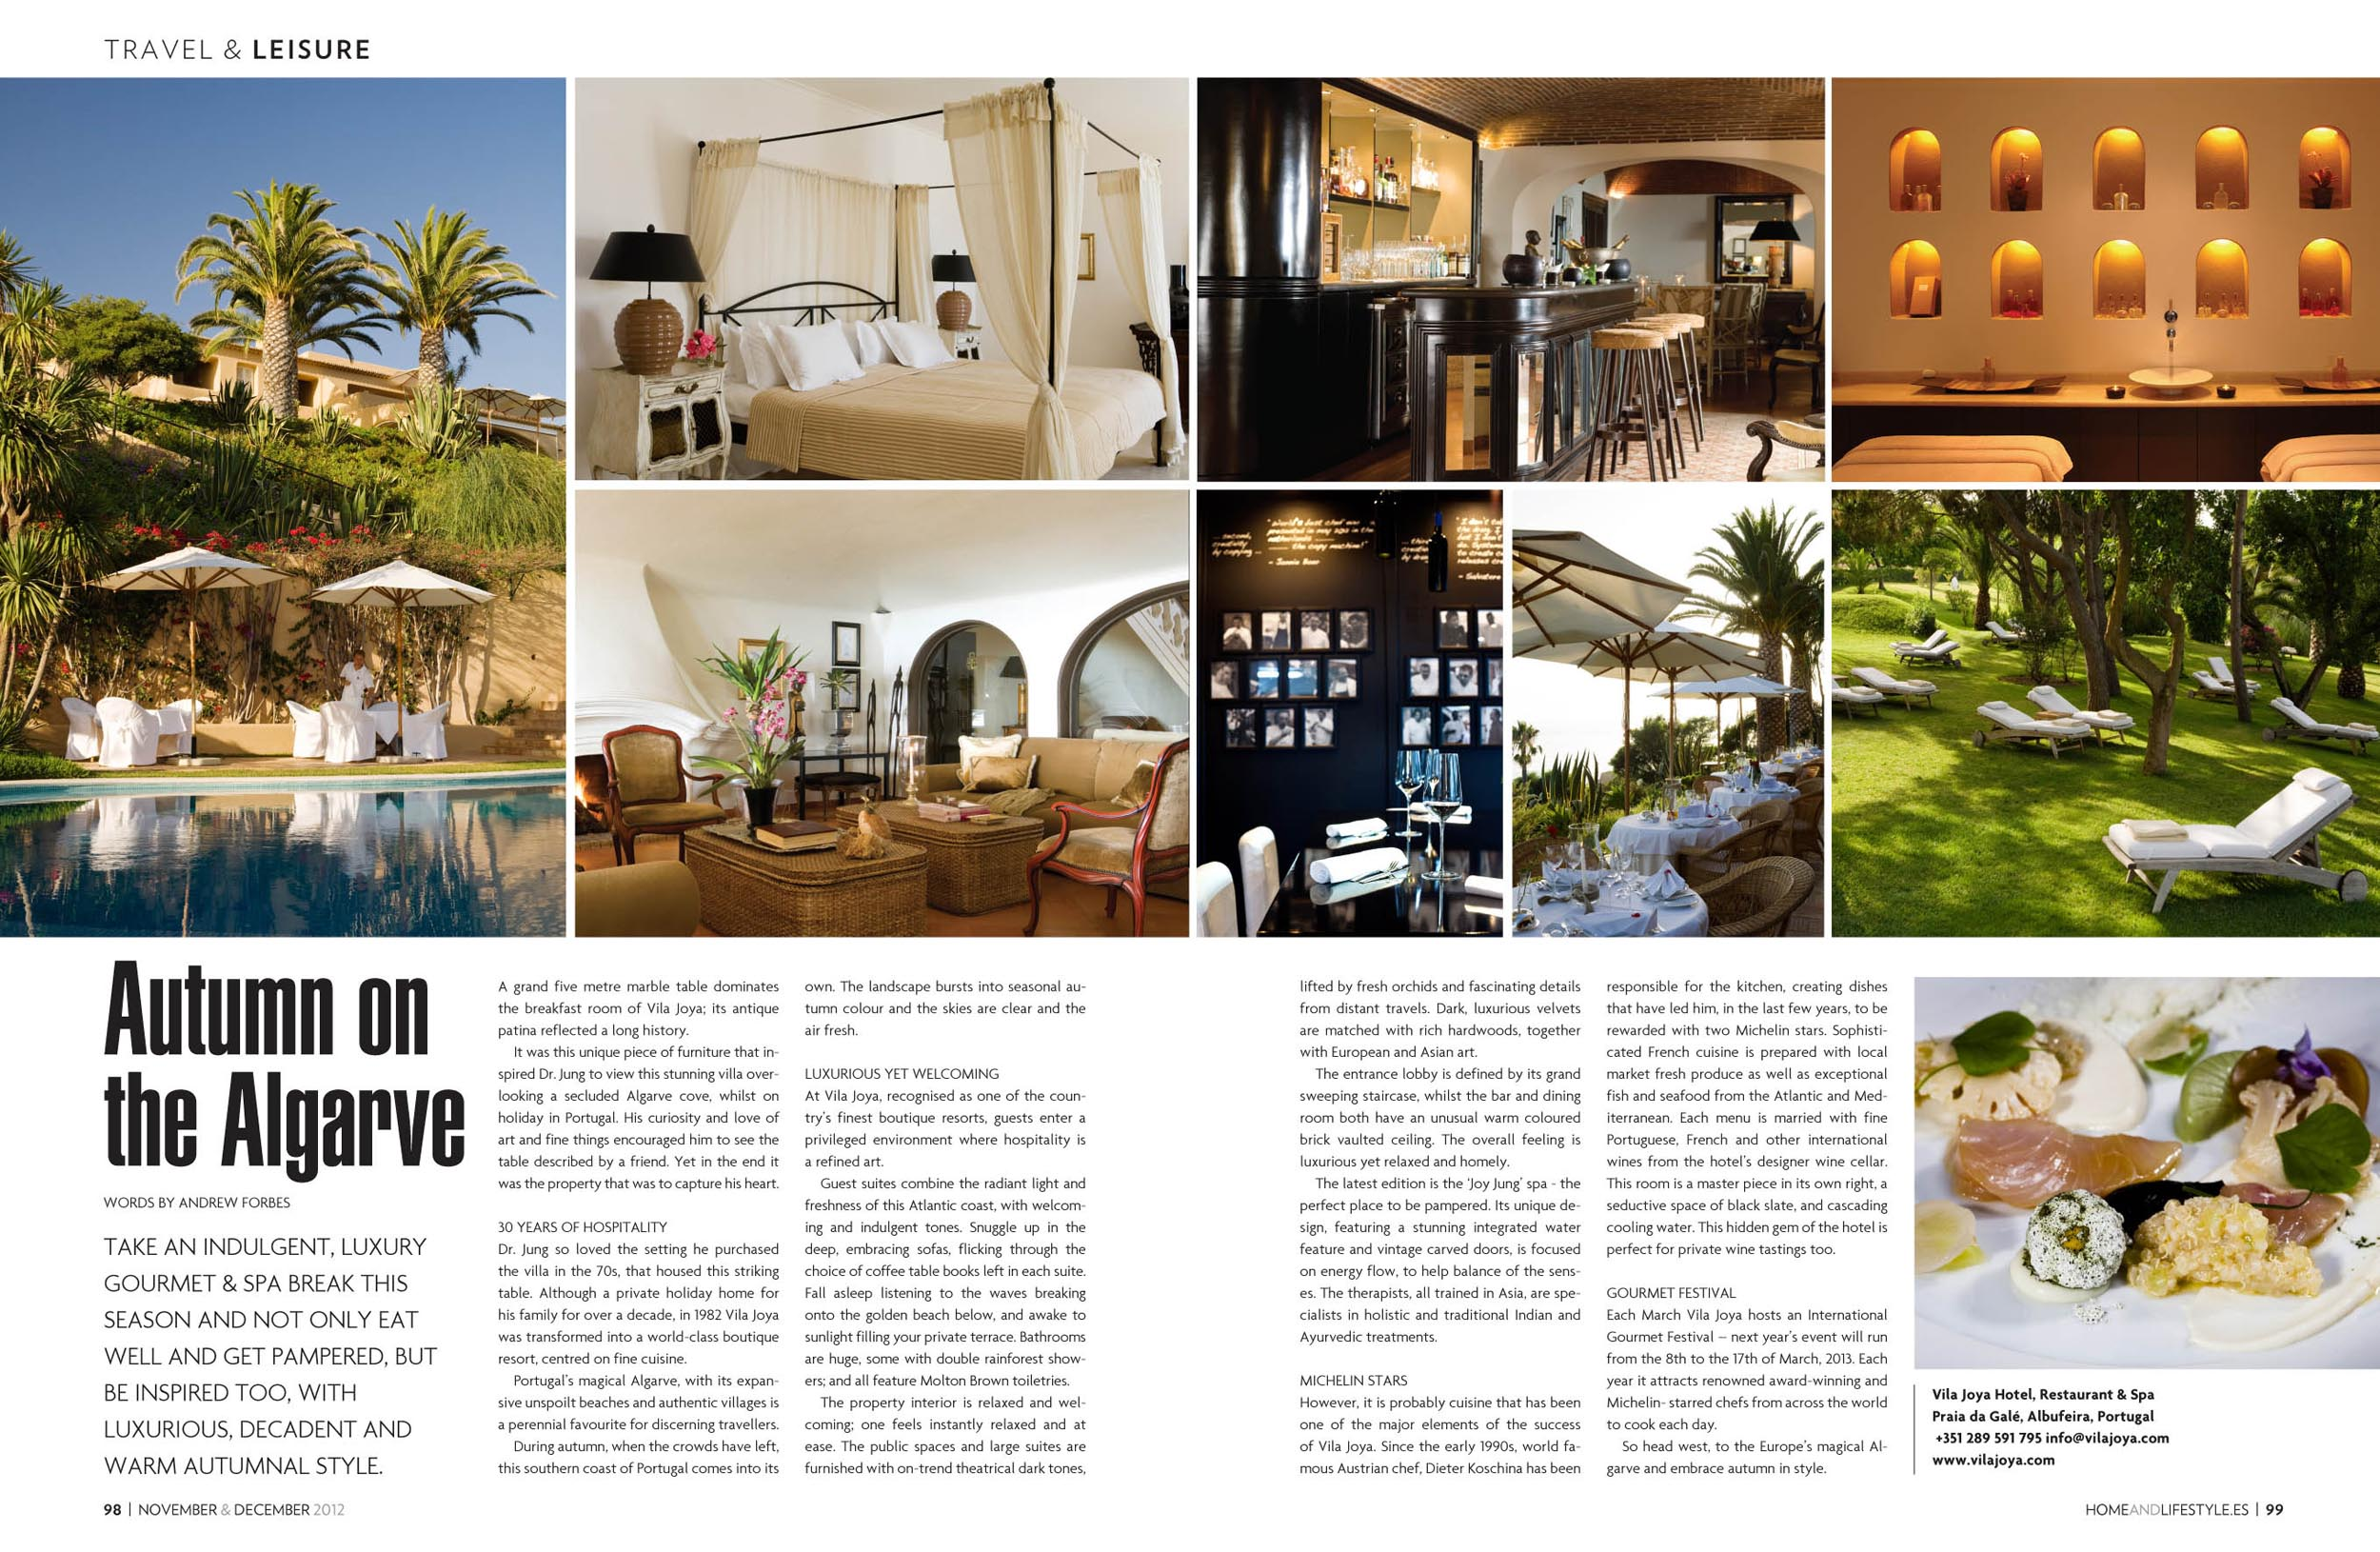 Autumn on the algarve vila joya portugal andrew forbes for Interior design articles